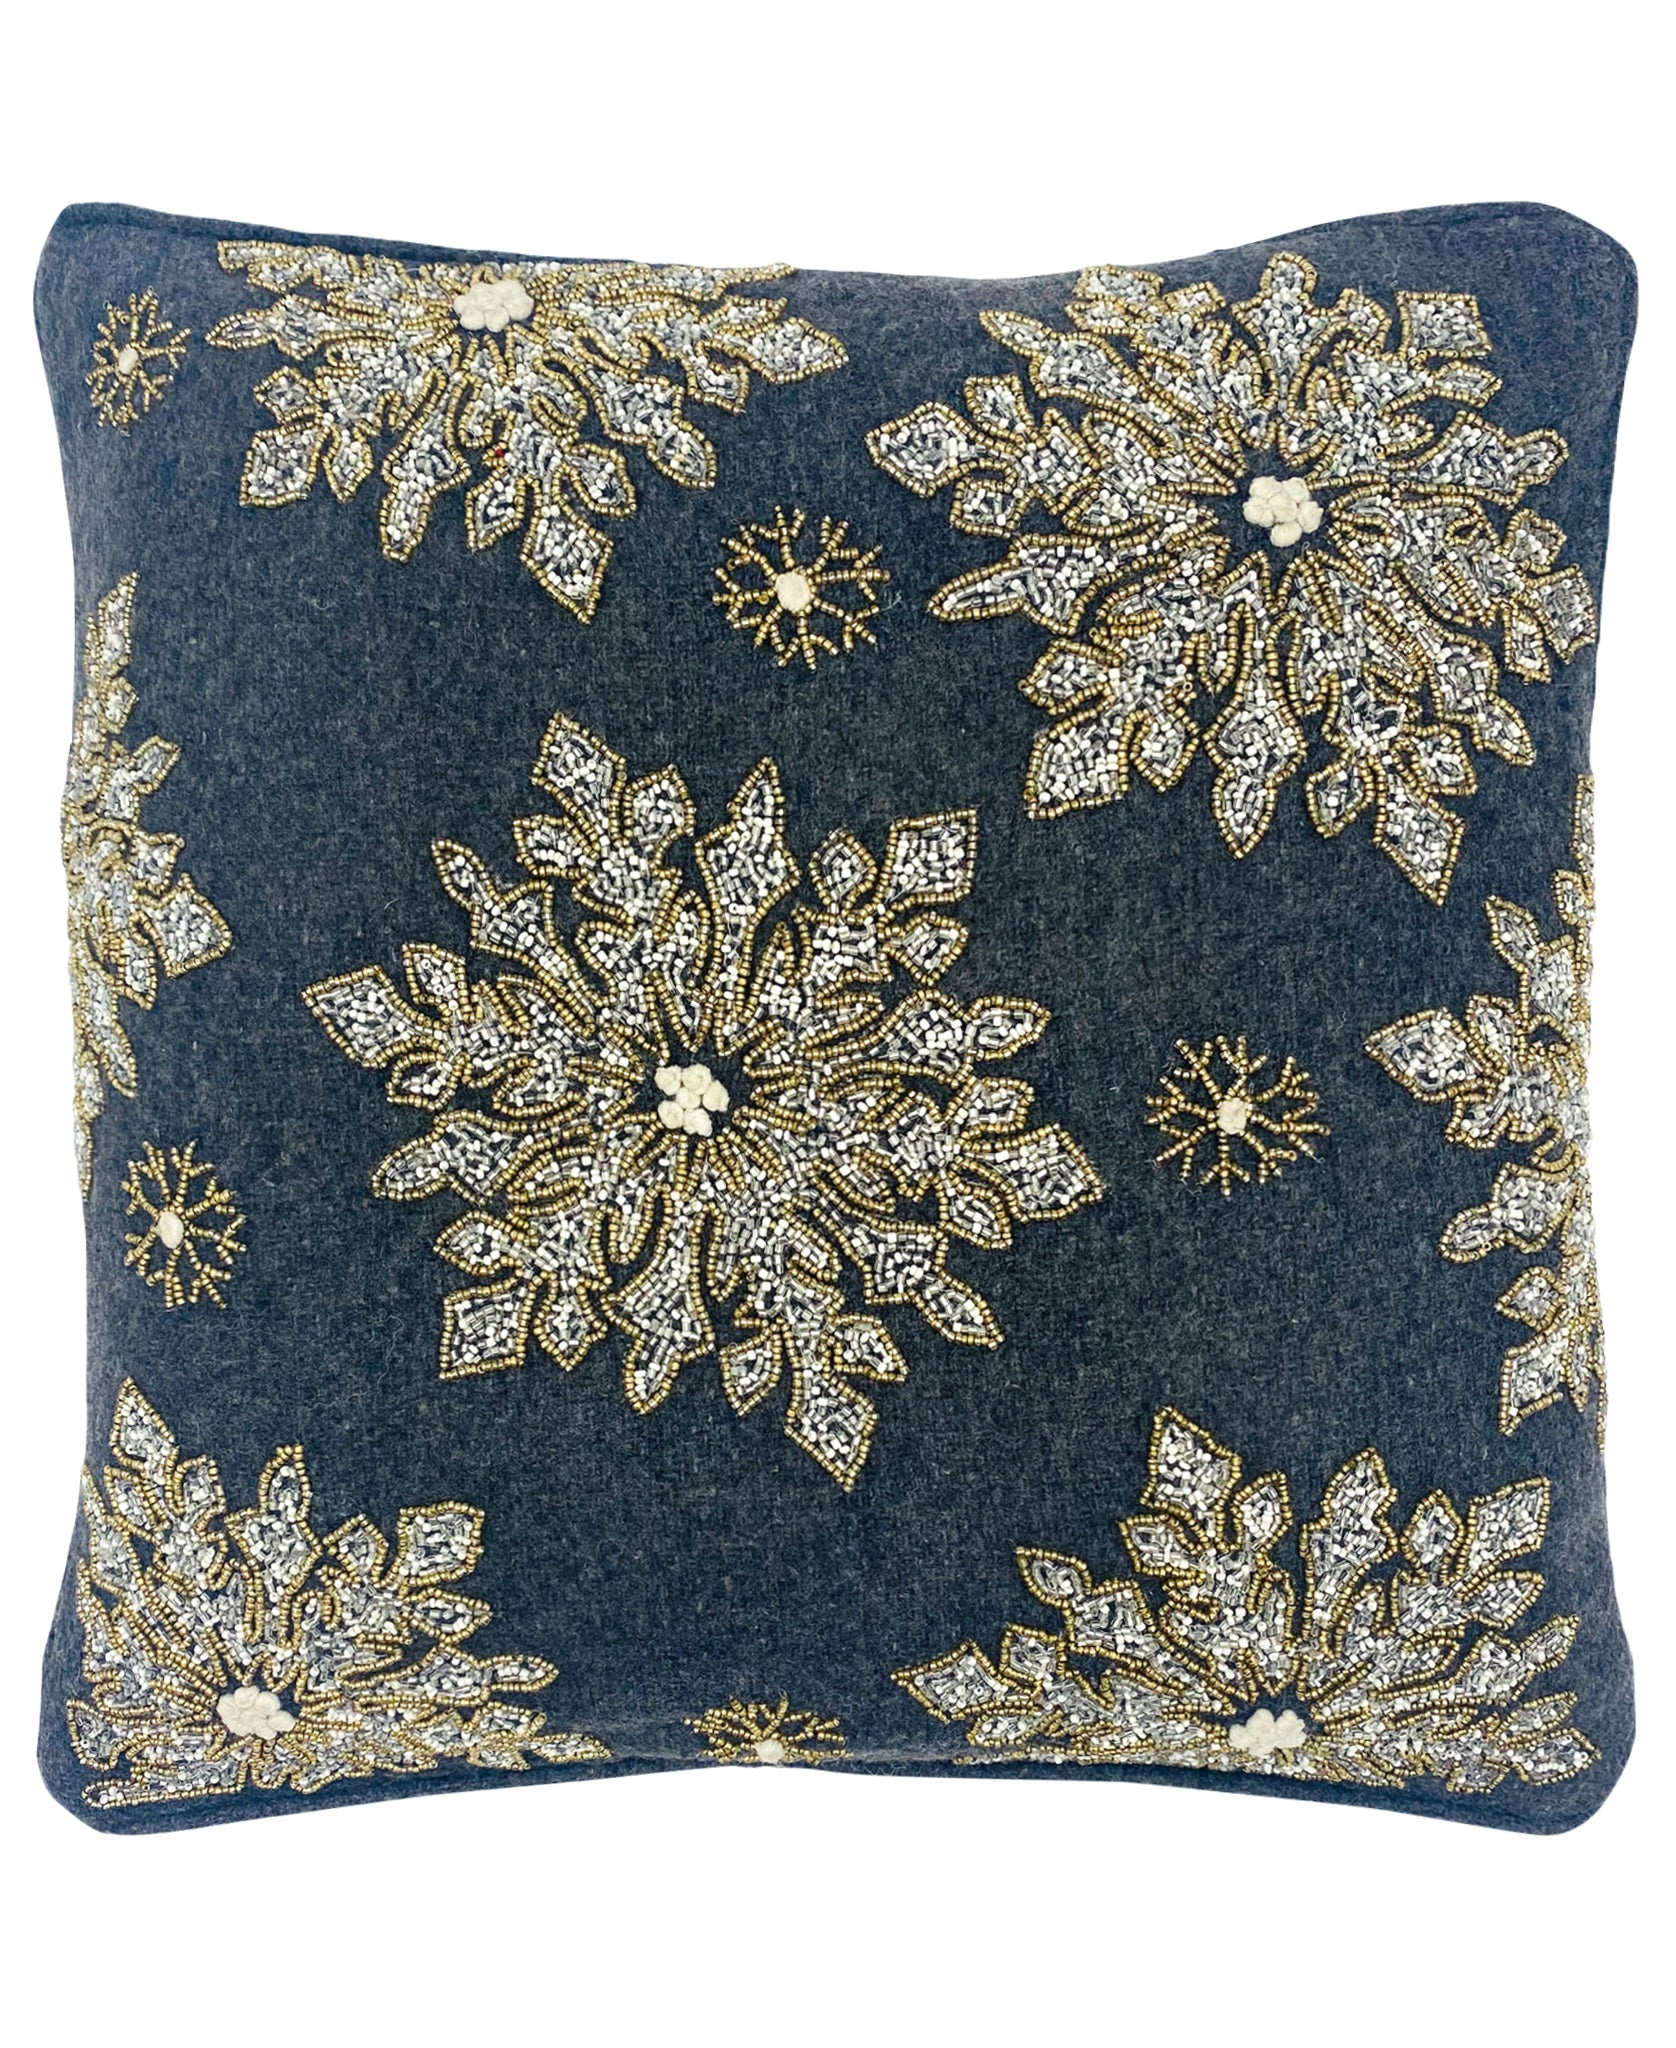 "Embellished Beaded Snowflake Felt Pillow, 20"" X 20"" Mod Lifestyles"